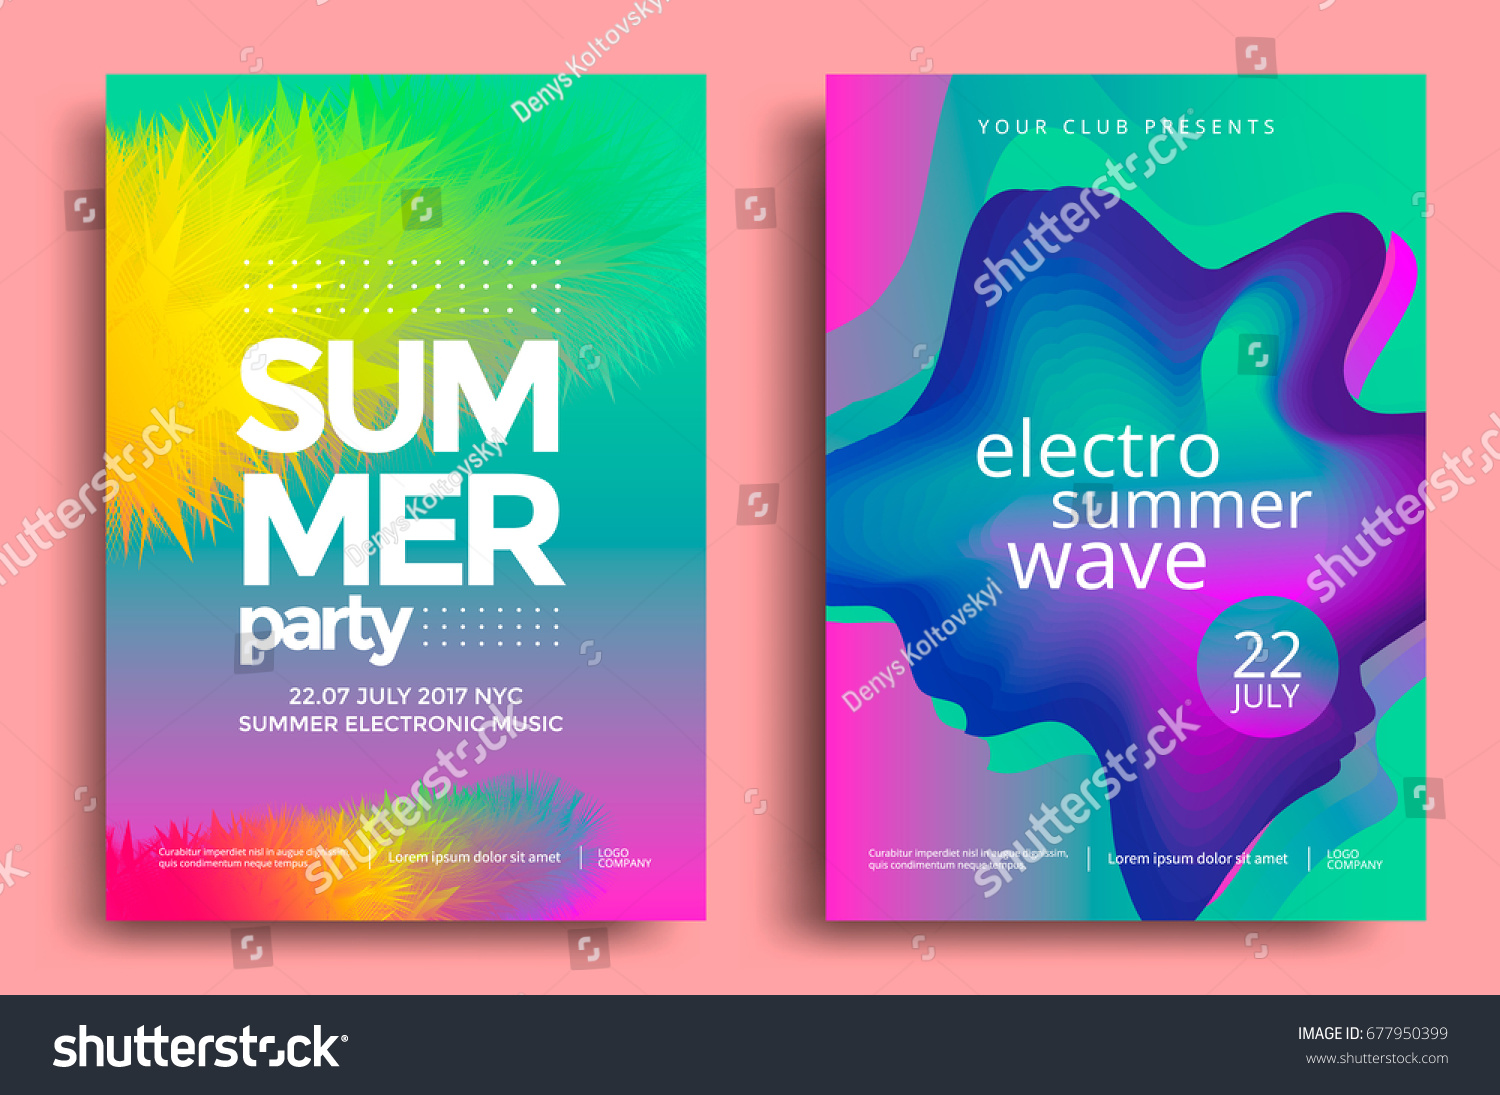 Electronic Music Fest And Electro Summer Wave Poster. Club Party Flyer.  Abstract Gradients Waves